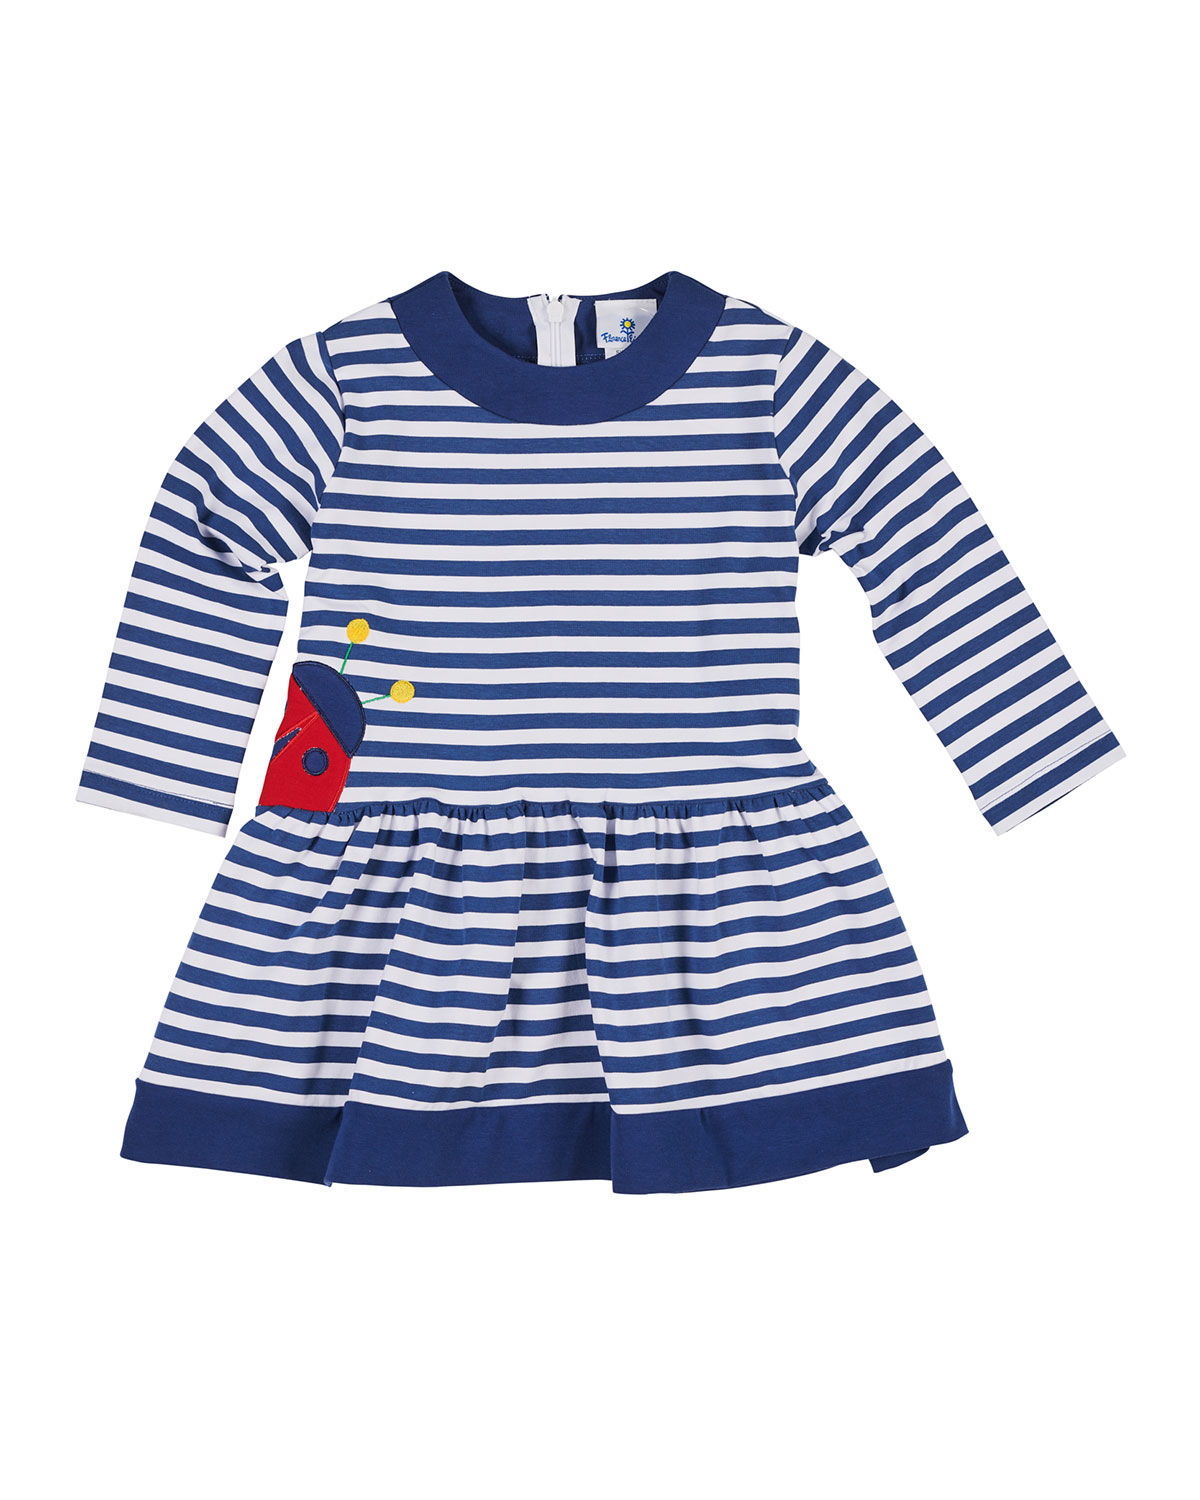 Striped Long-Sleeve Dress w/ Ladybug Applique, Size 2-6X